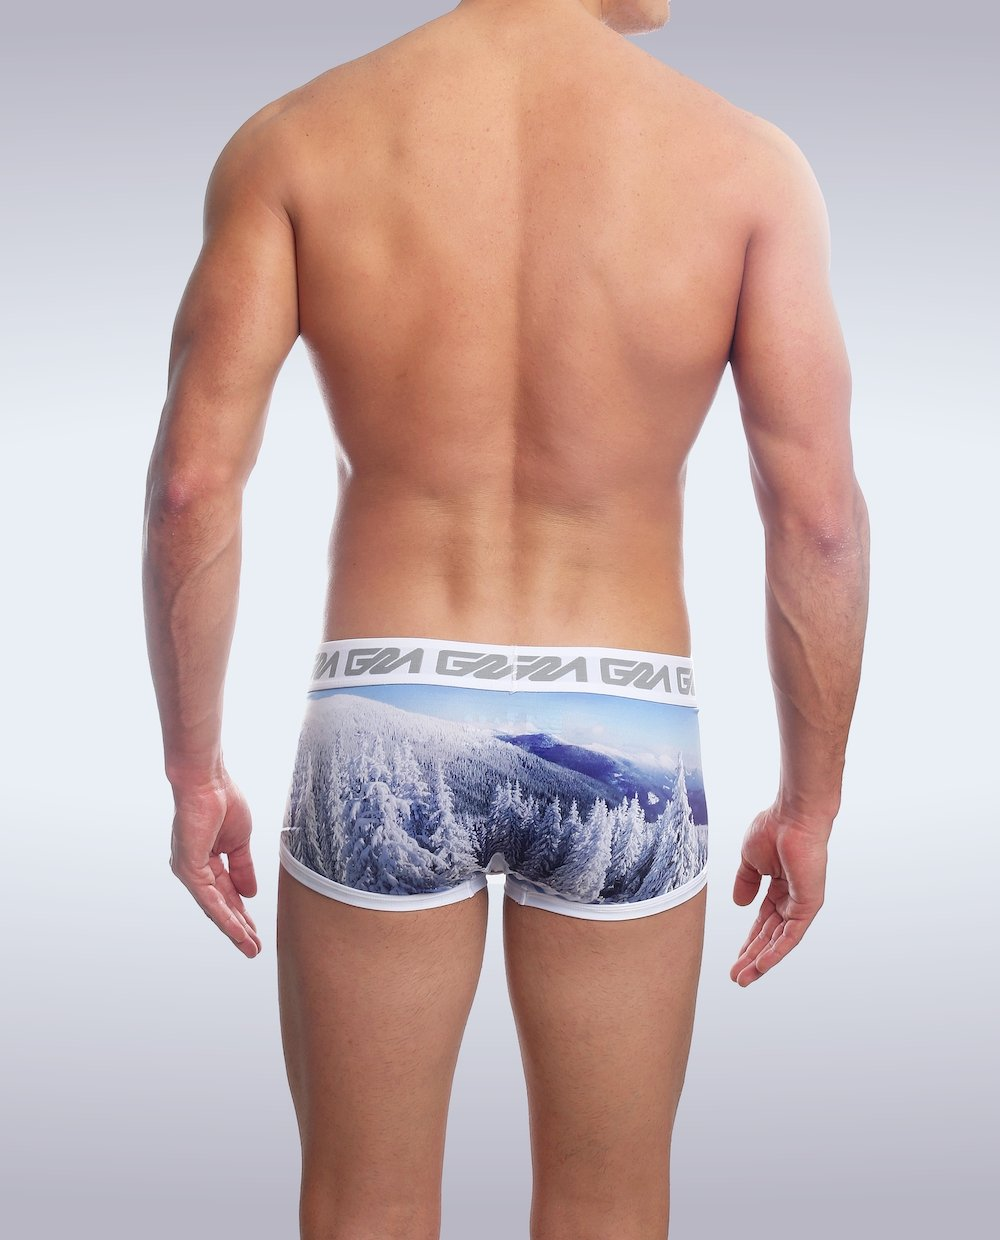 Whistler Trunks - Garçon Underwear sexy men's underwear Trunks Garçon Underwear